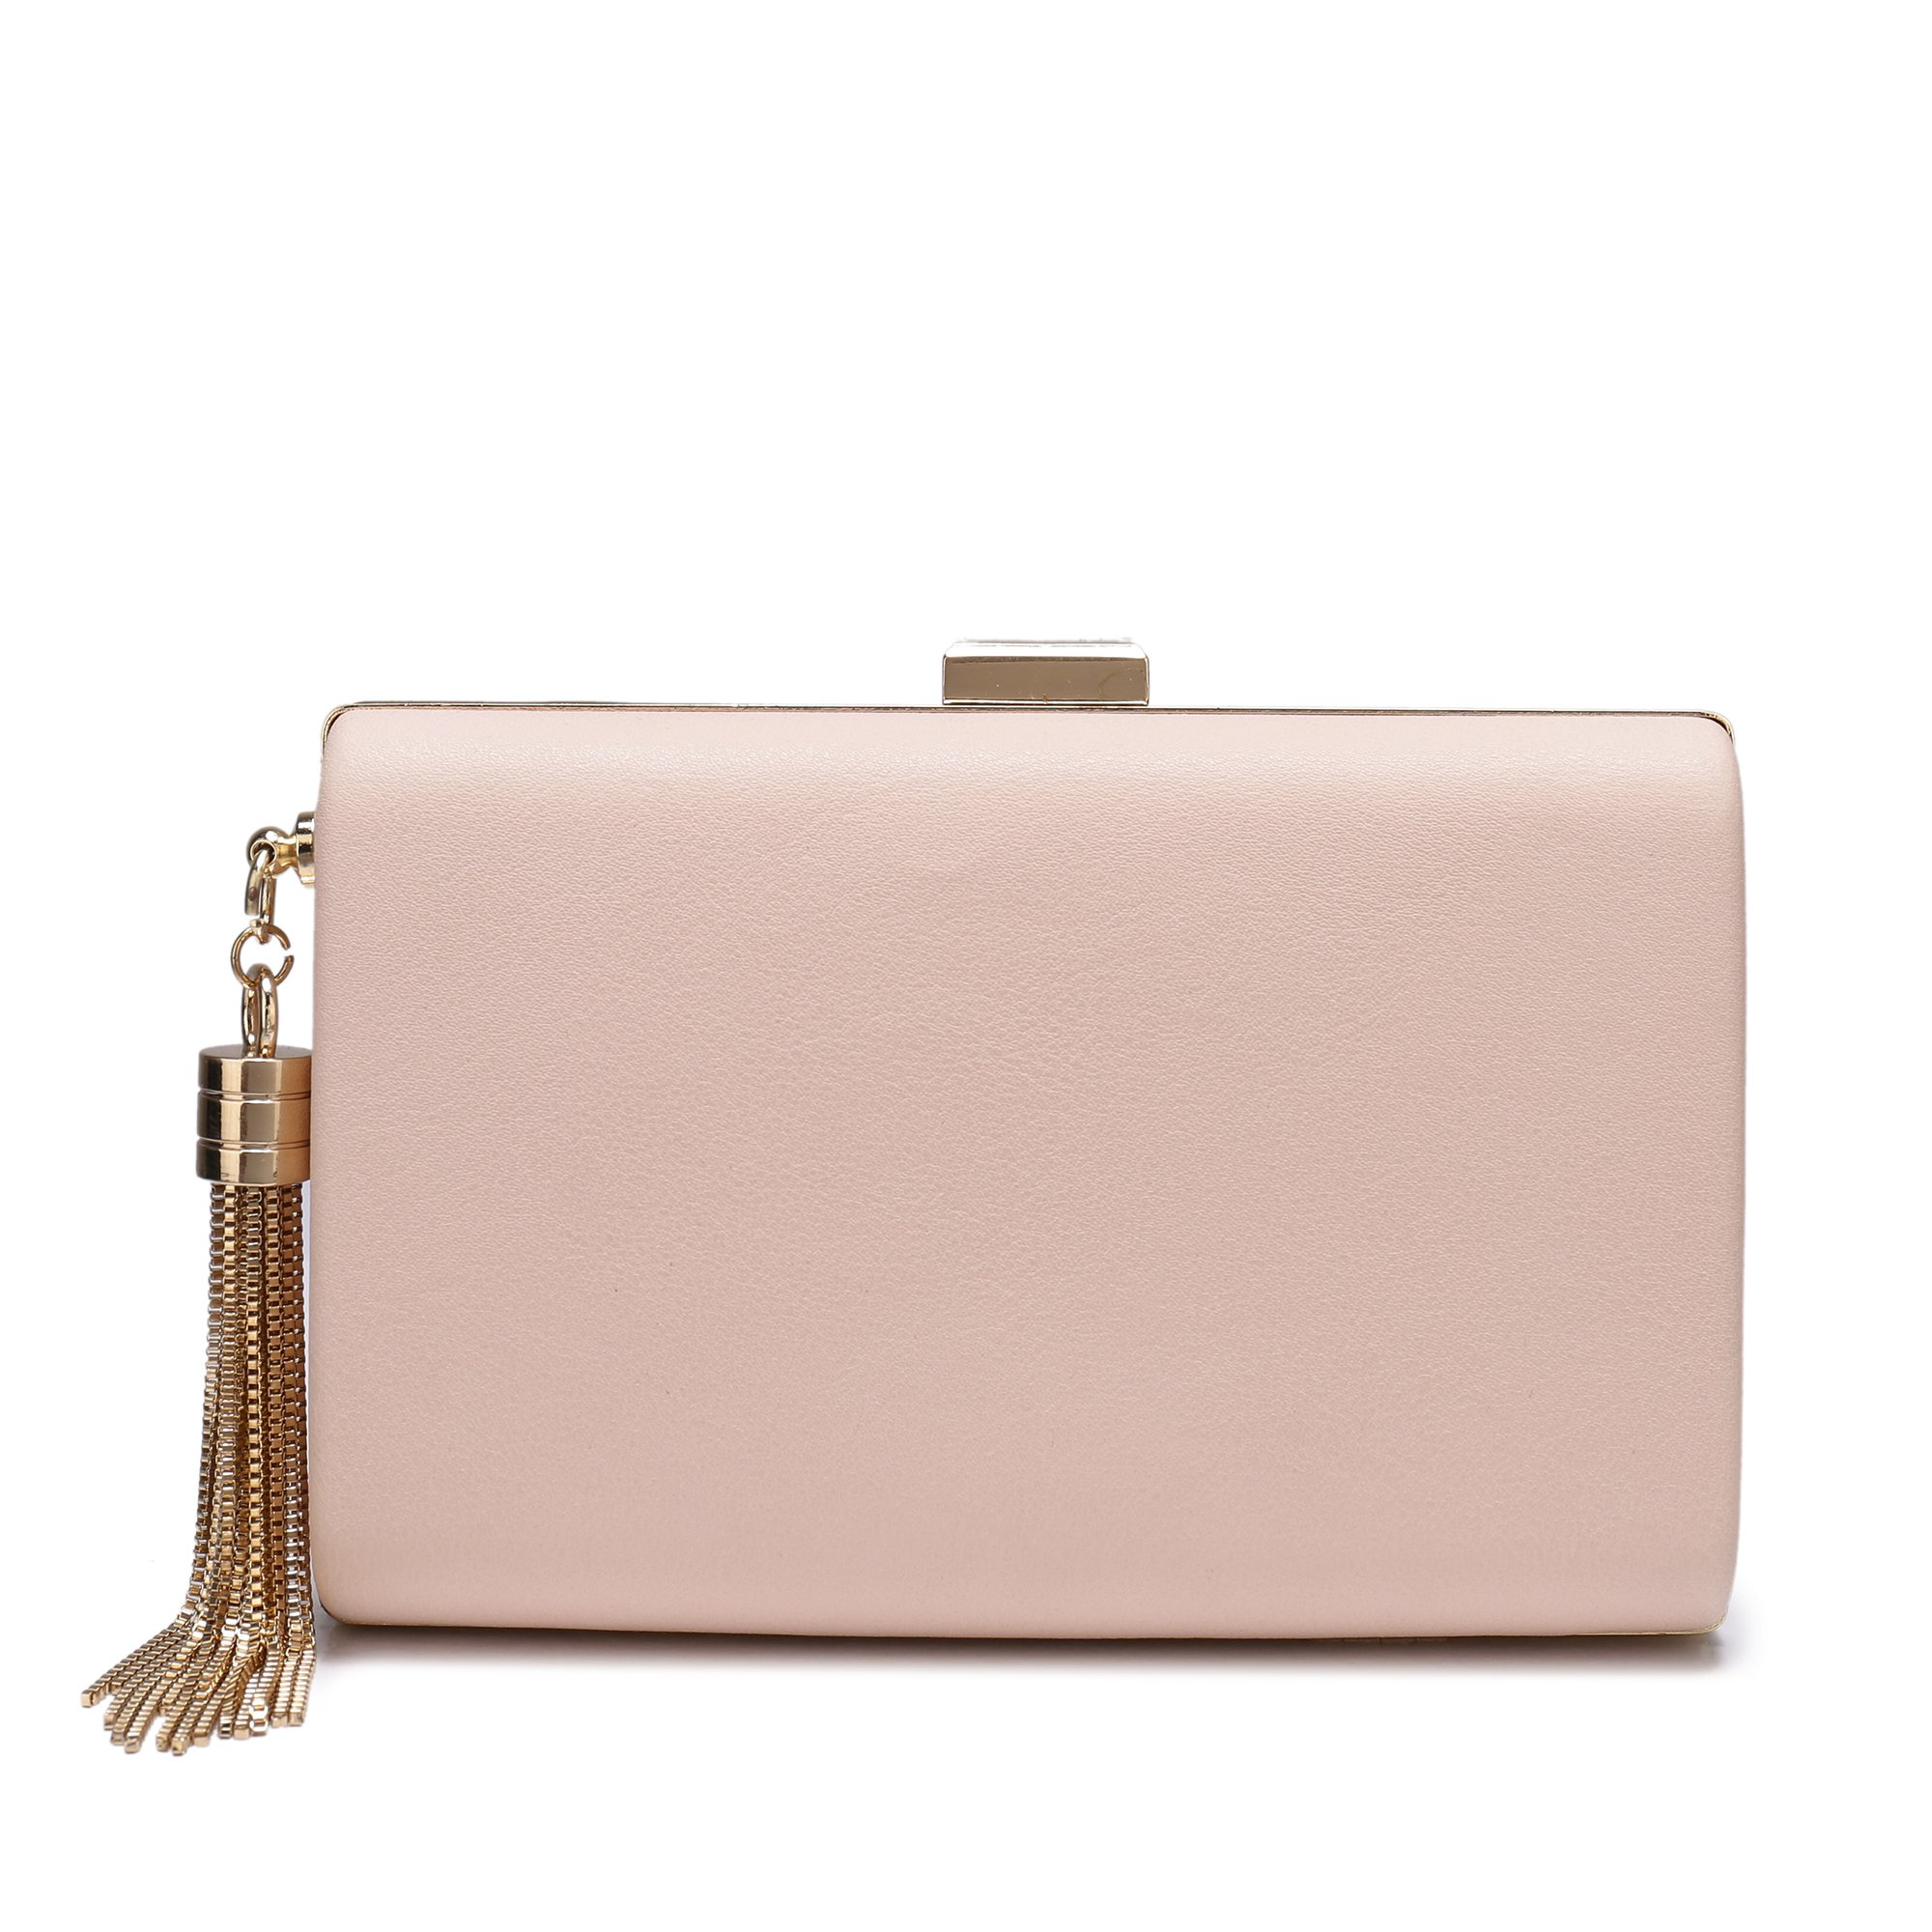 Leather Evening Clutch Handbag Clutch Purse Prom For Cocktail Wedding Women Pink